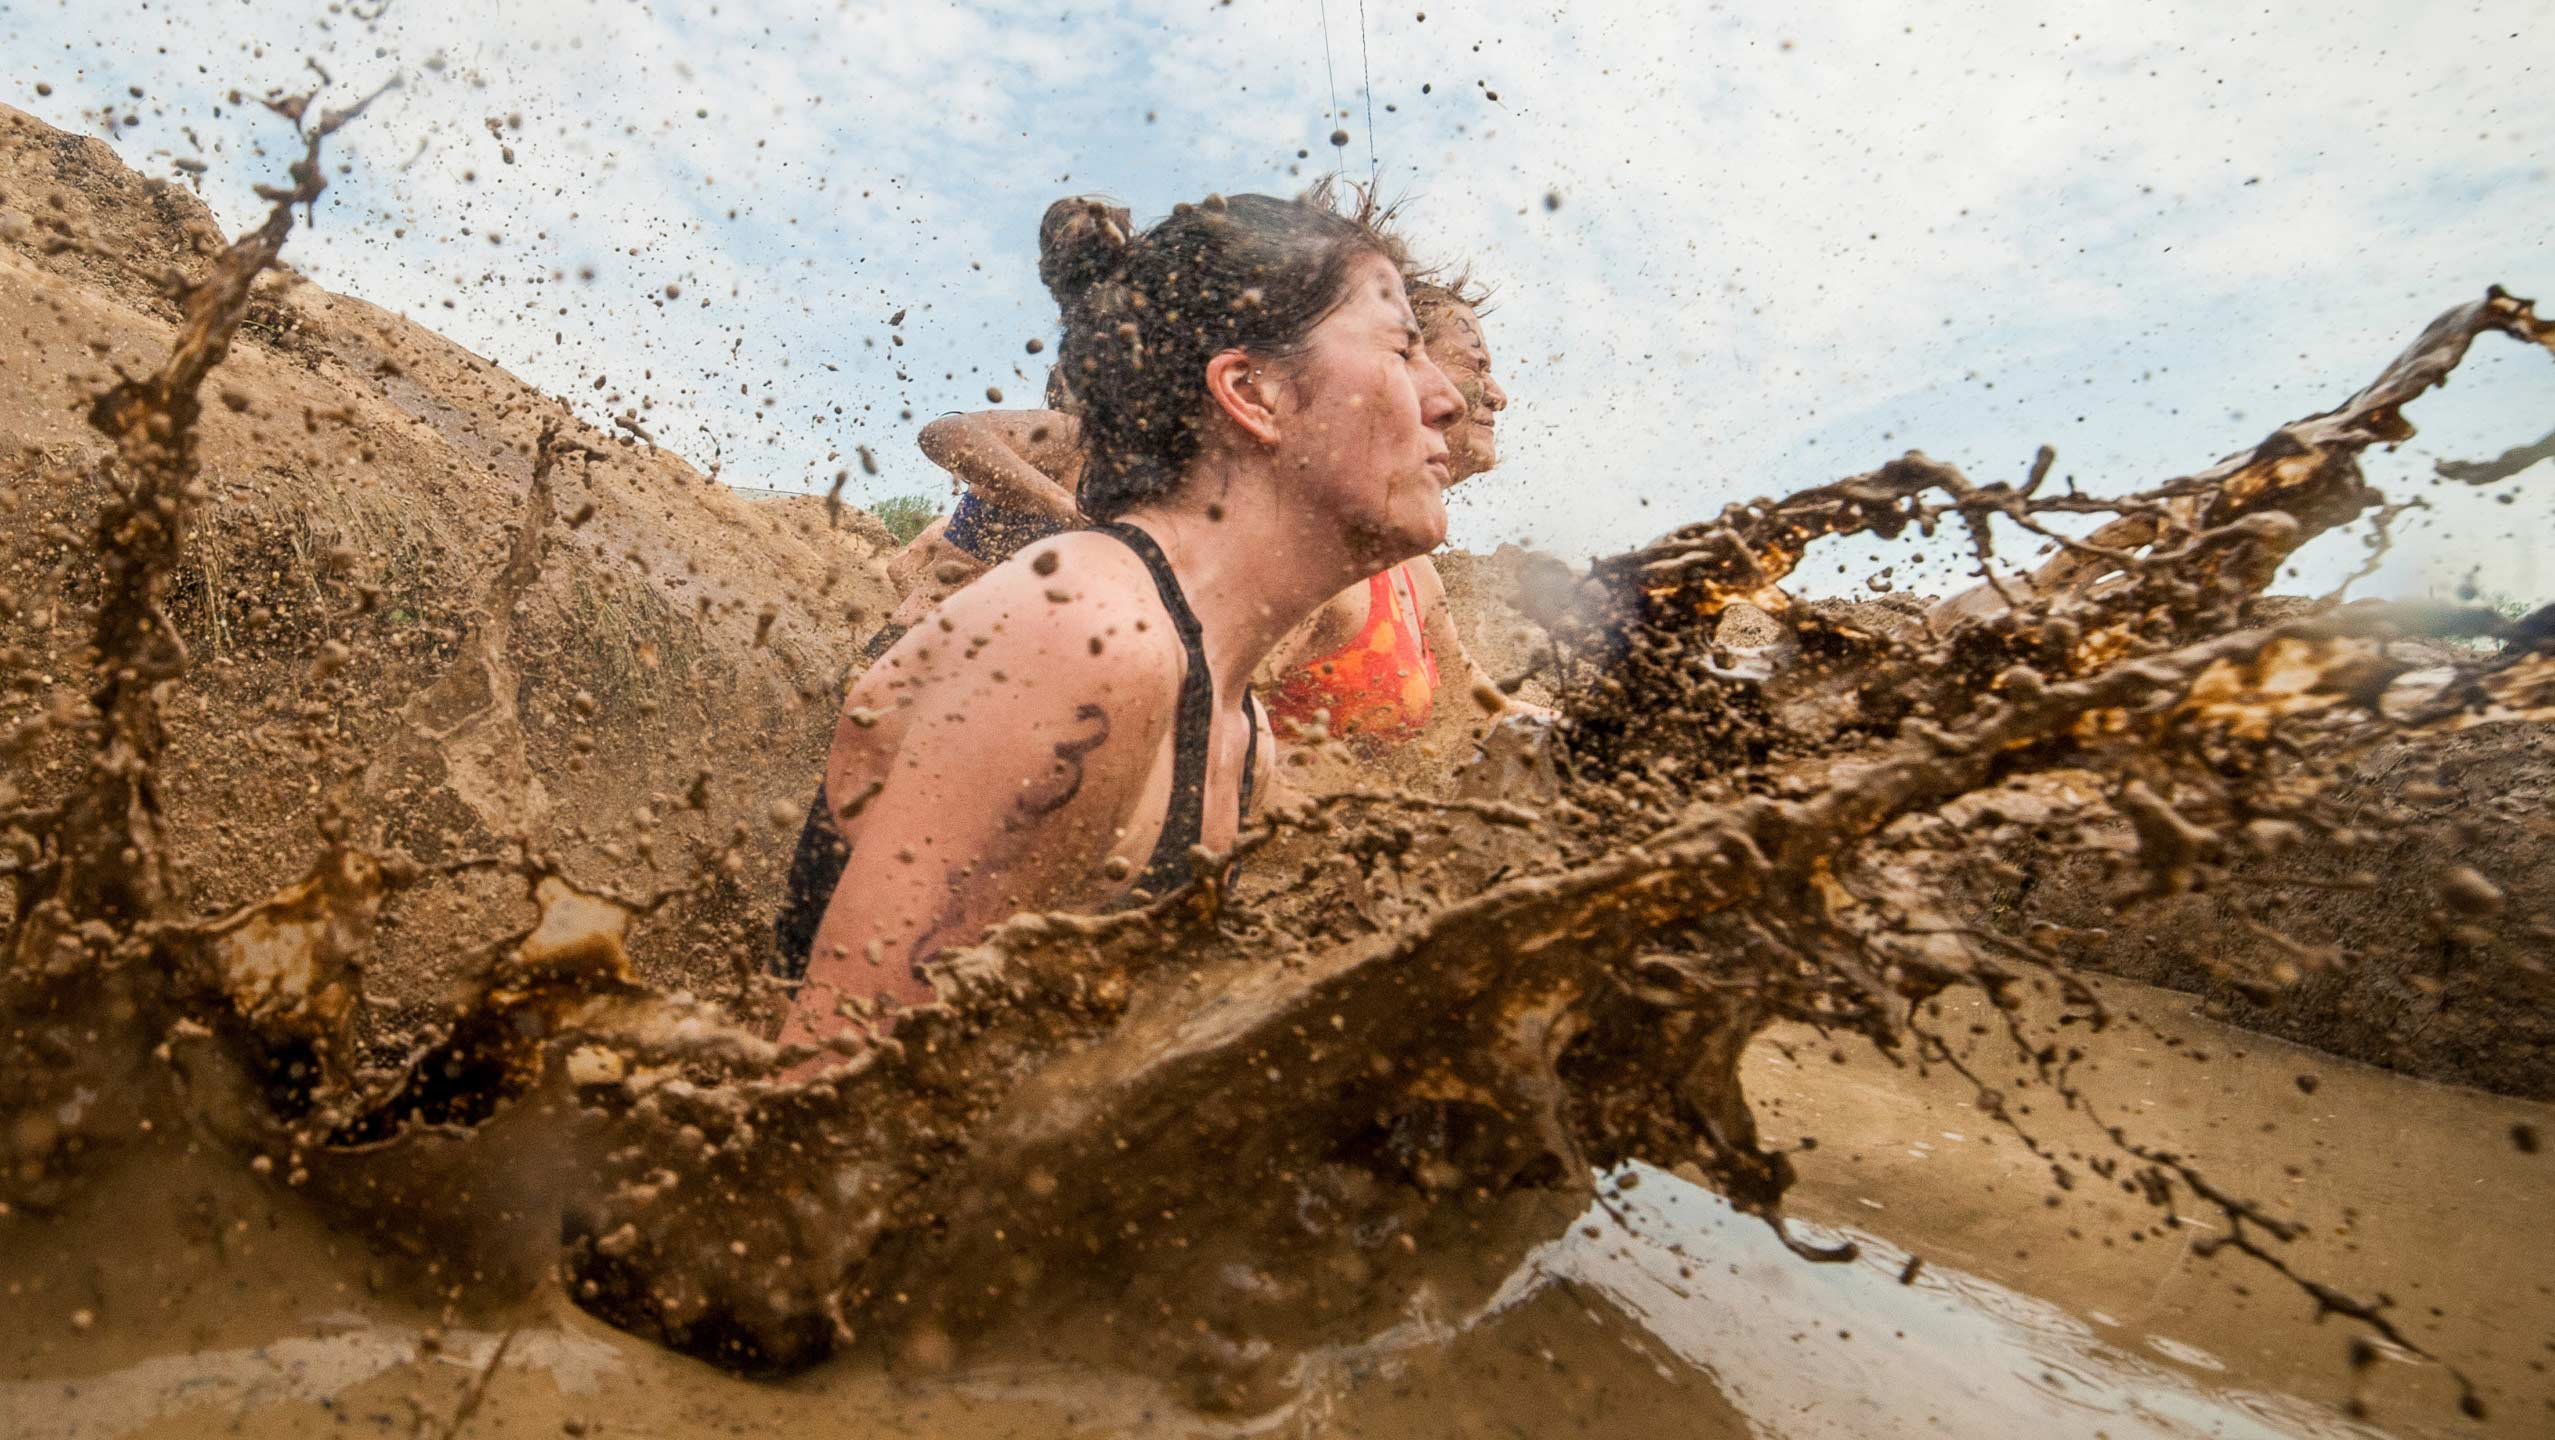 Tough Mudder combines obstacles and mud to create an event like no other